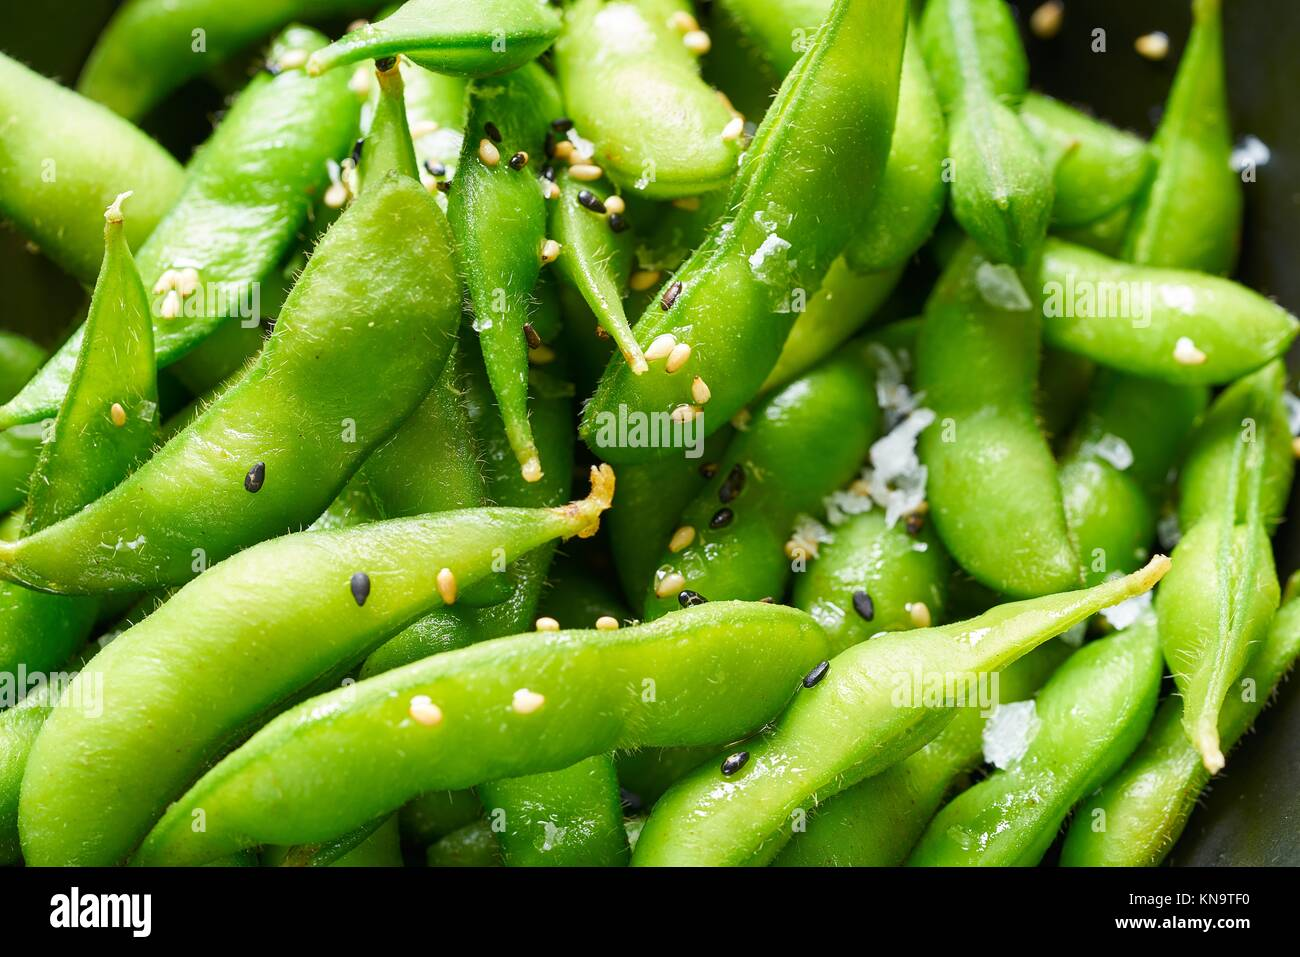 Frais d'edamame soja close-up texture macro soja immatures dans la gousse. Photo Stock